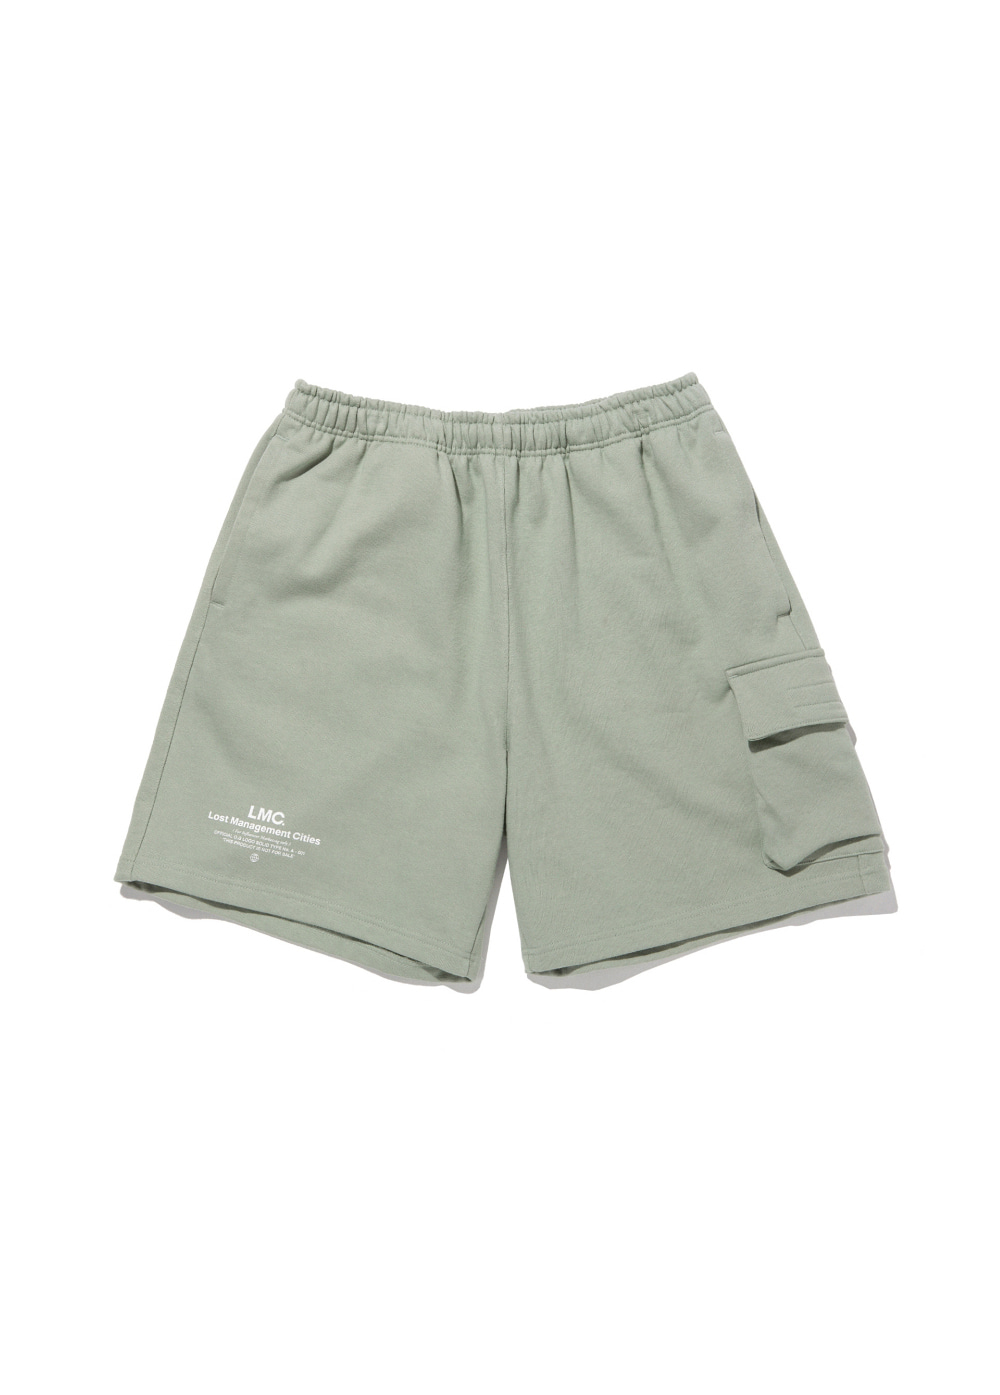 LMC SIDE POCKET SWEAT SHORTS olive